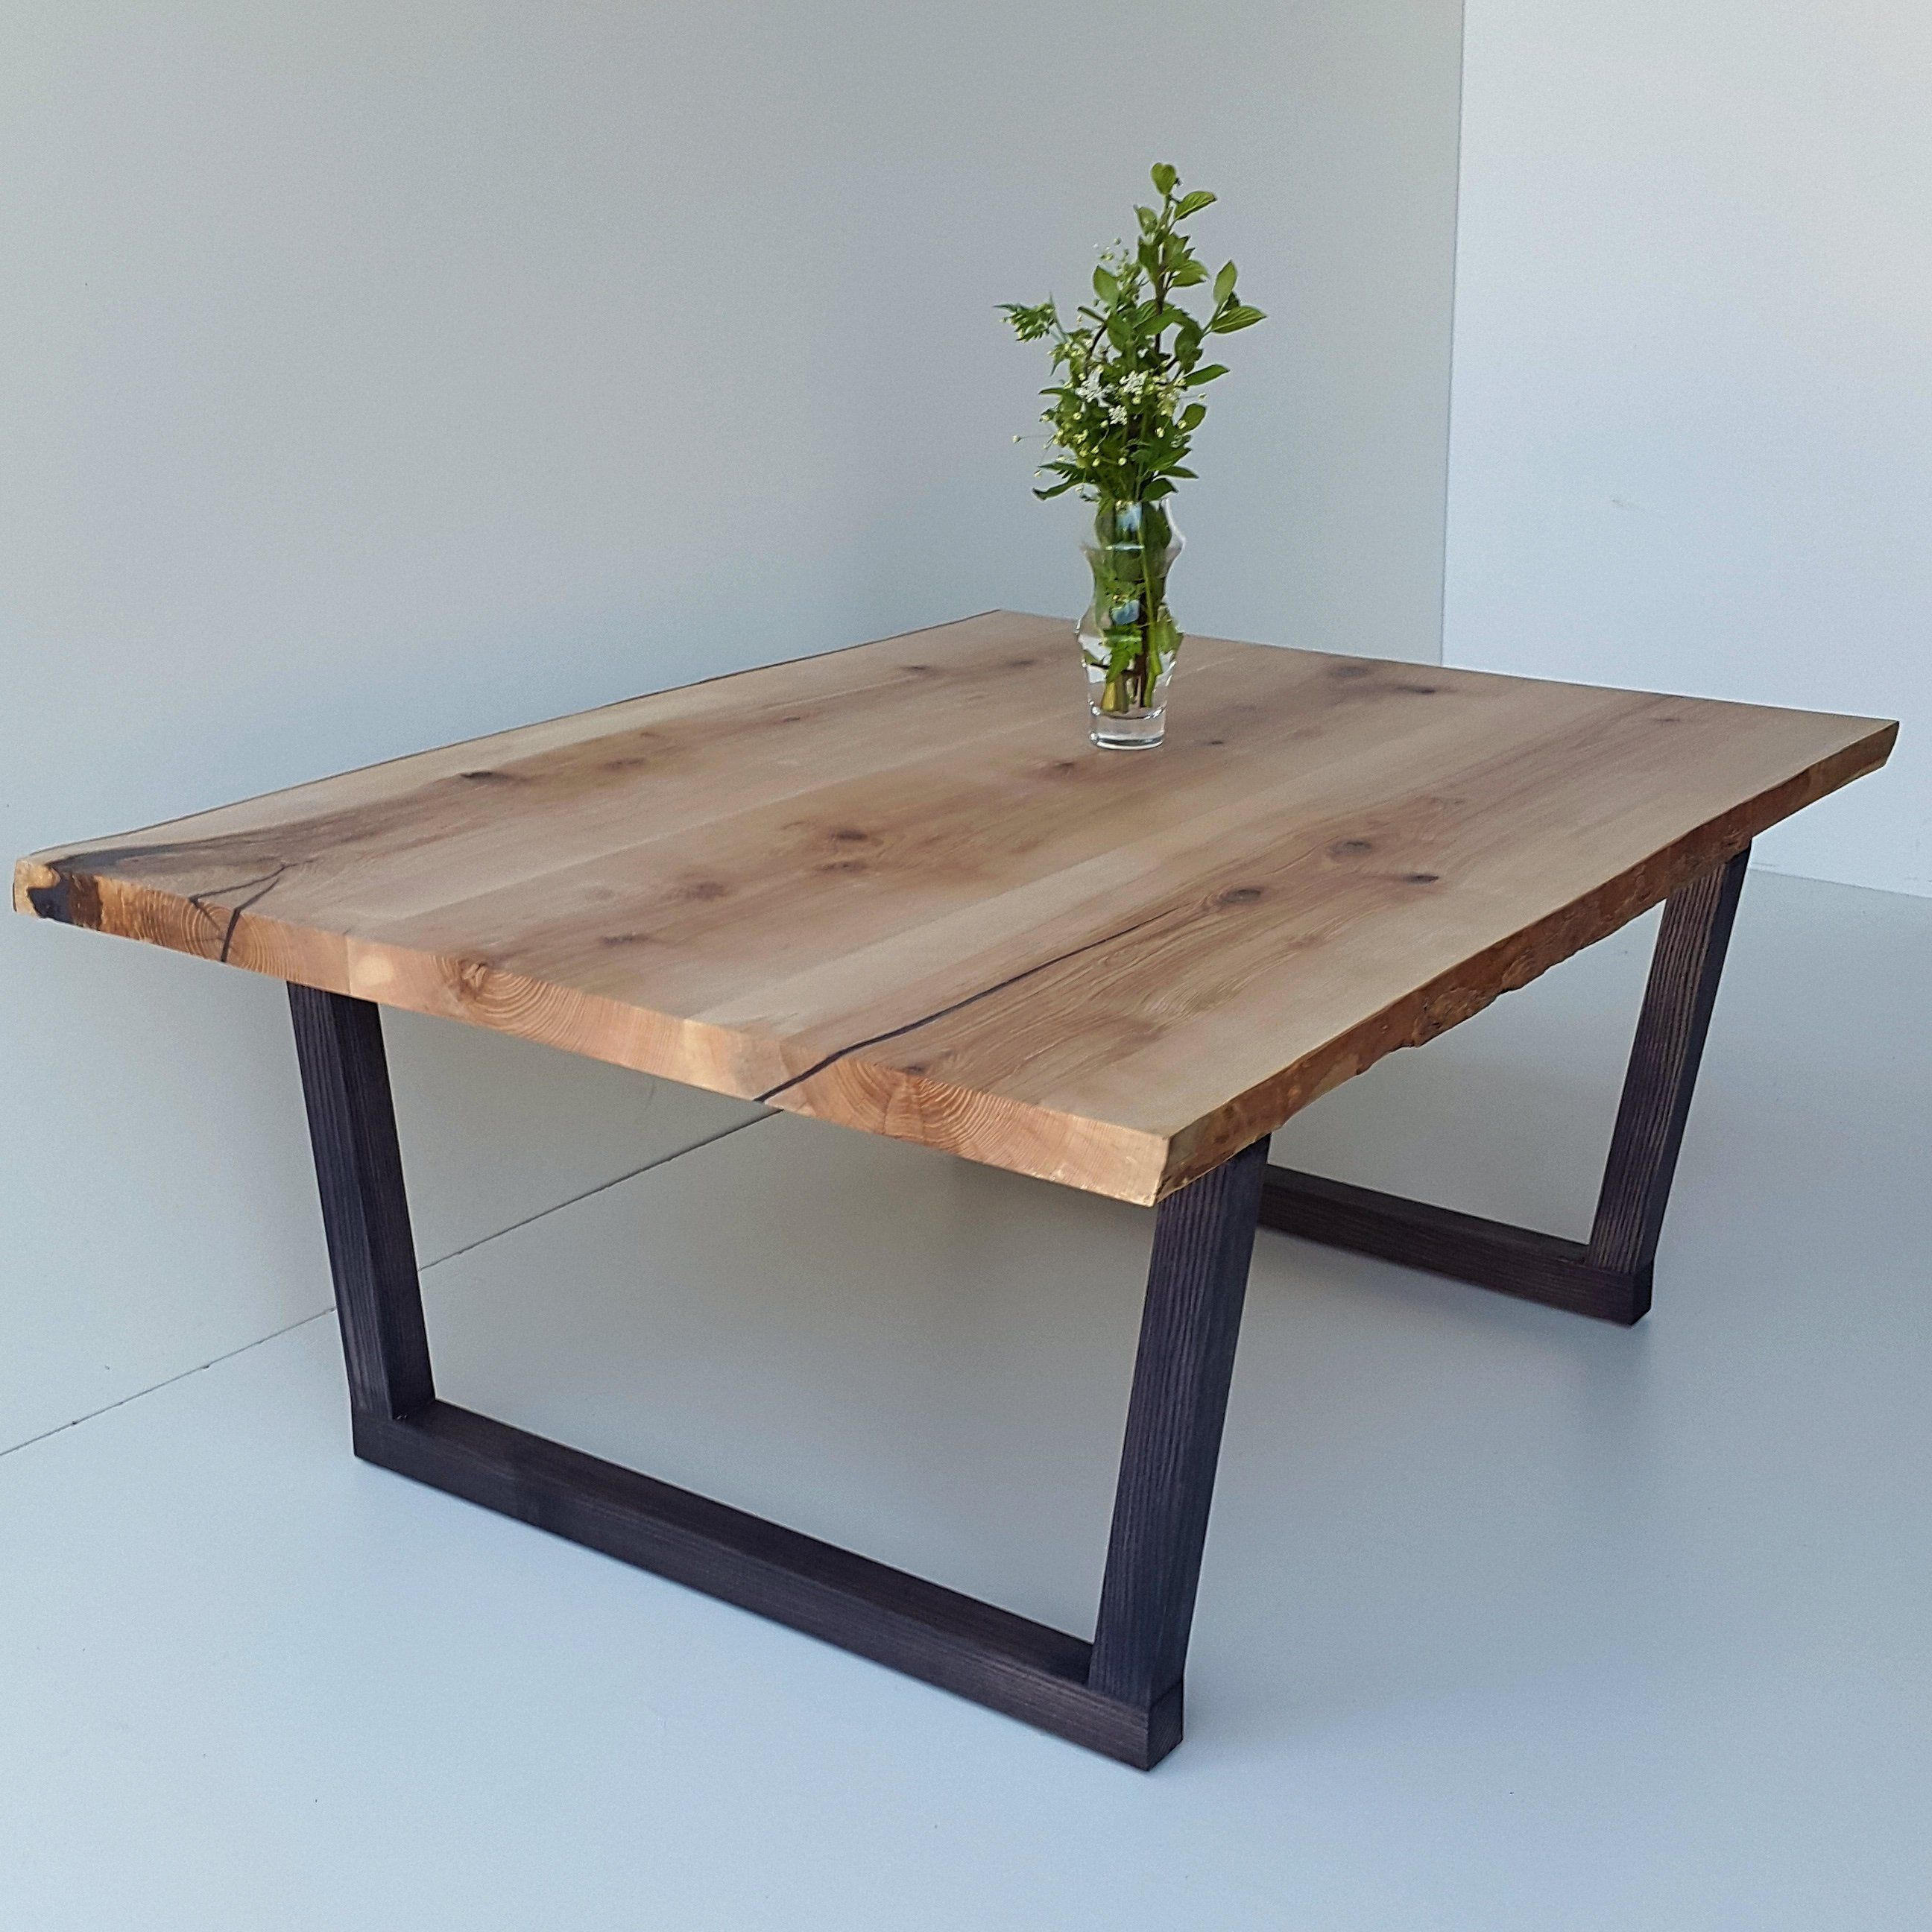 Ash Coffee Table Plank S Groovy Products Table Coffee Dining